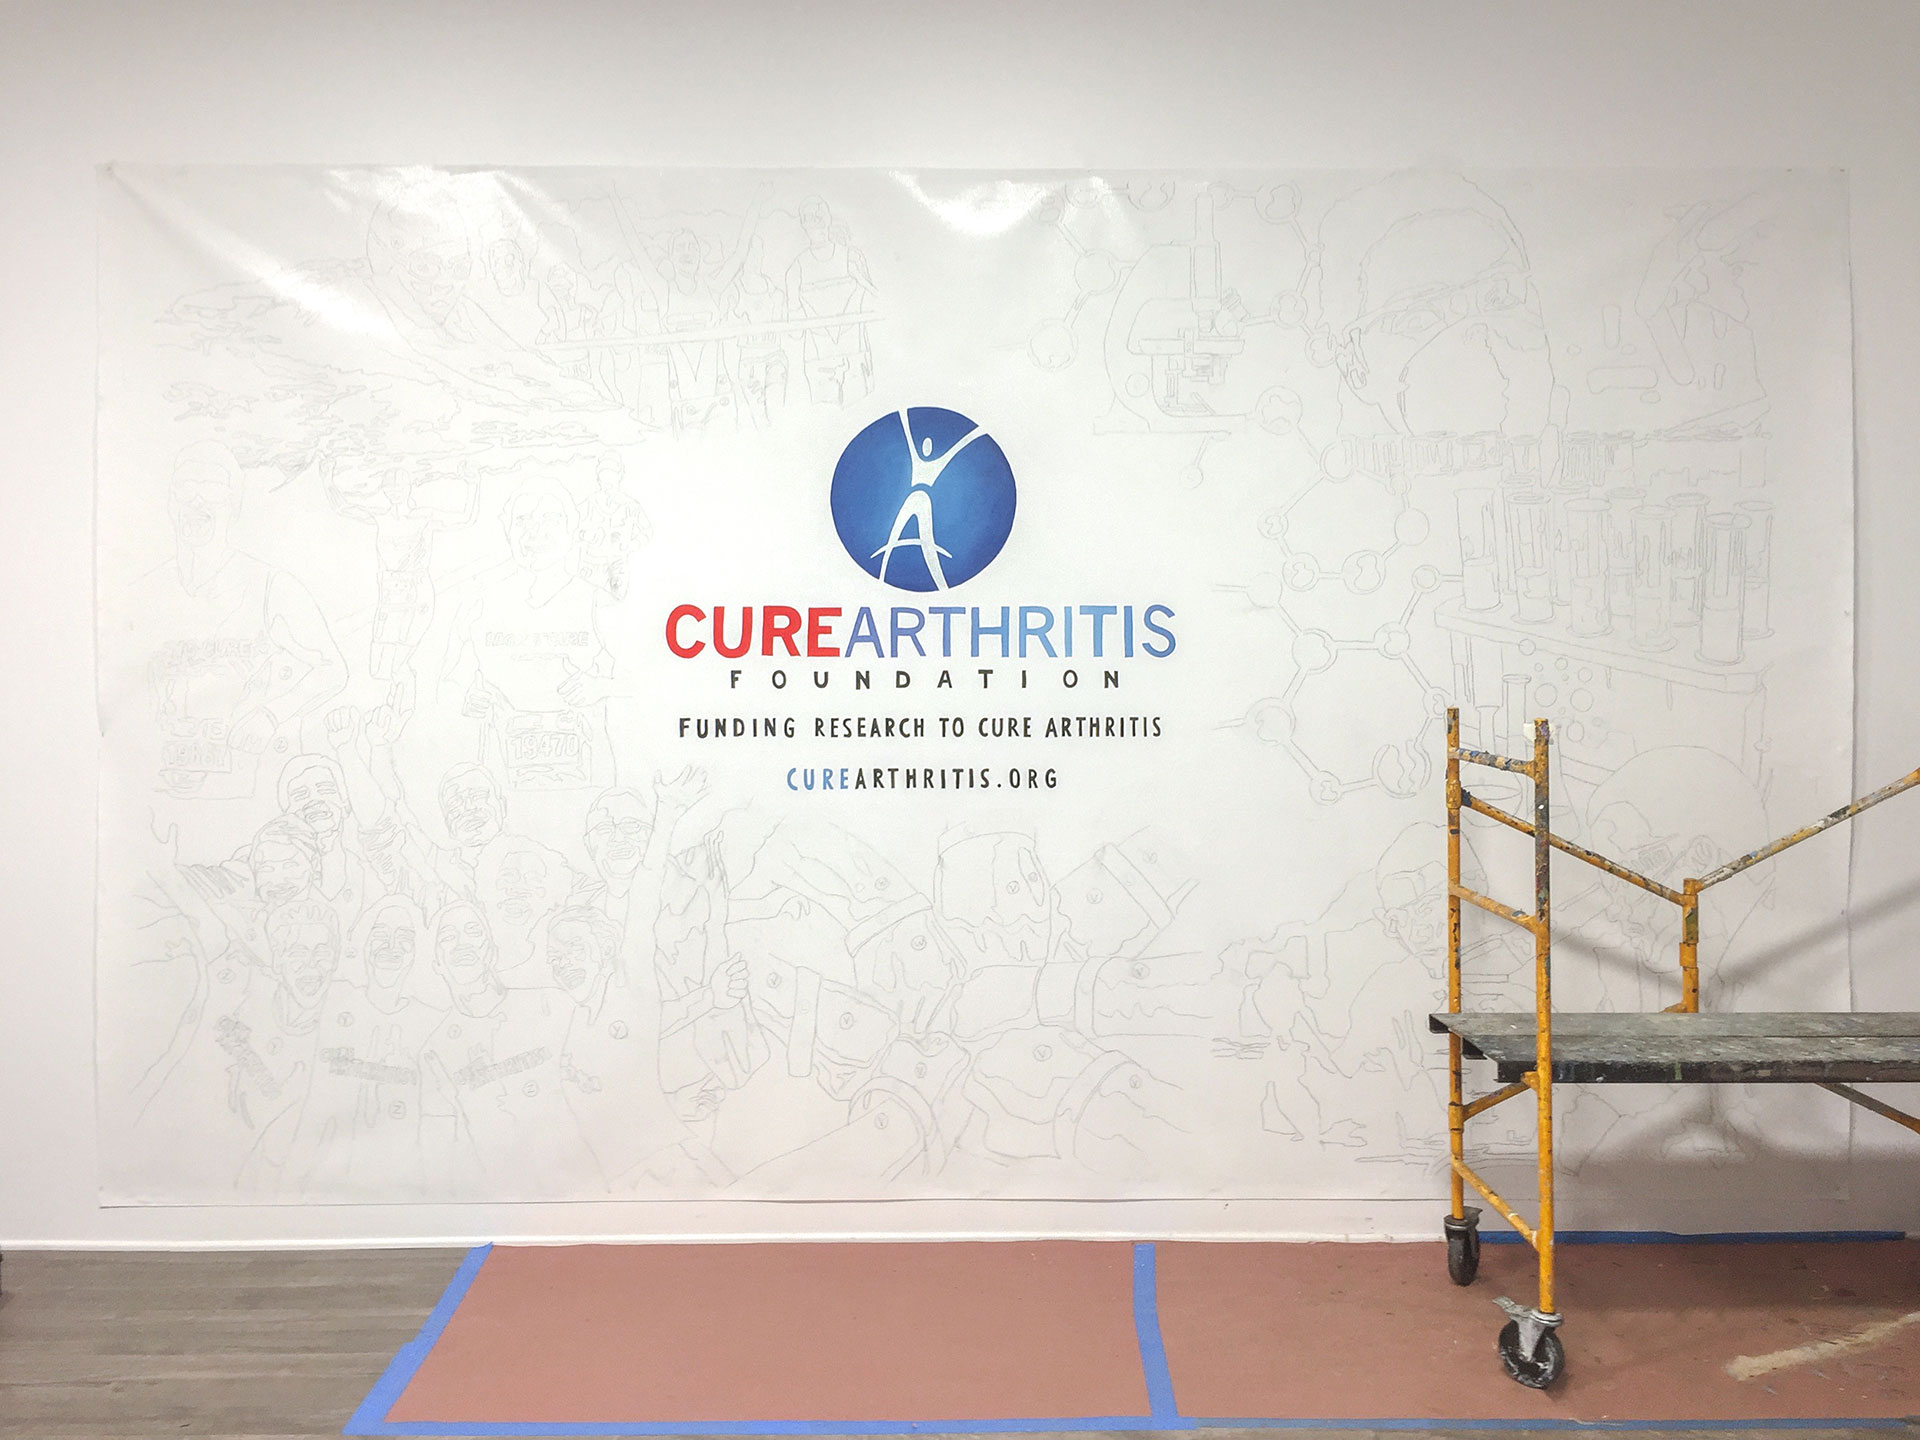 Paint-by-Number, Cure Arthritis Community Event